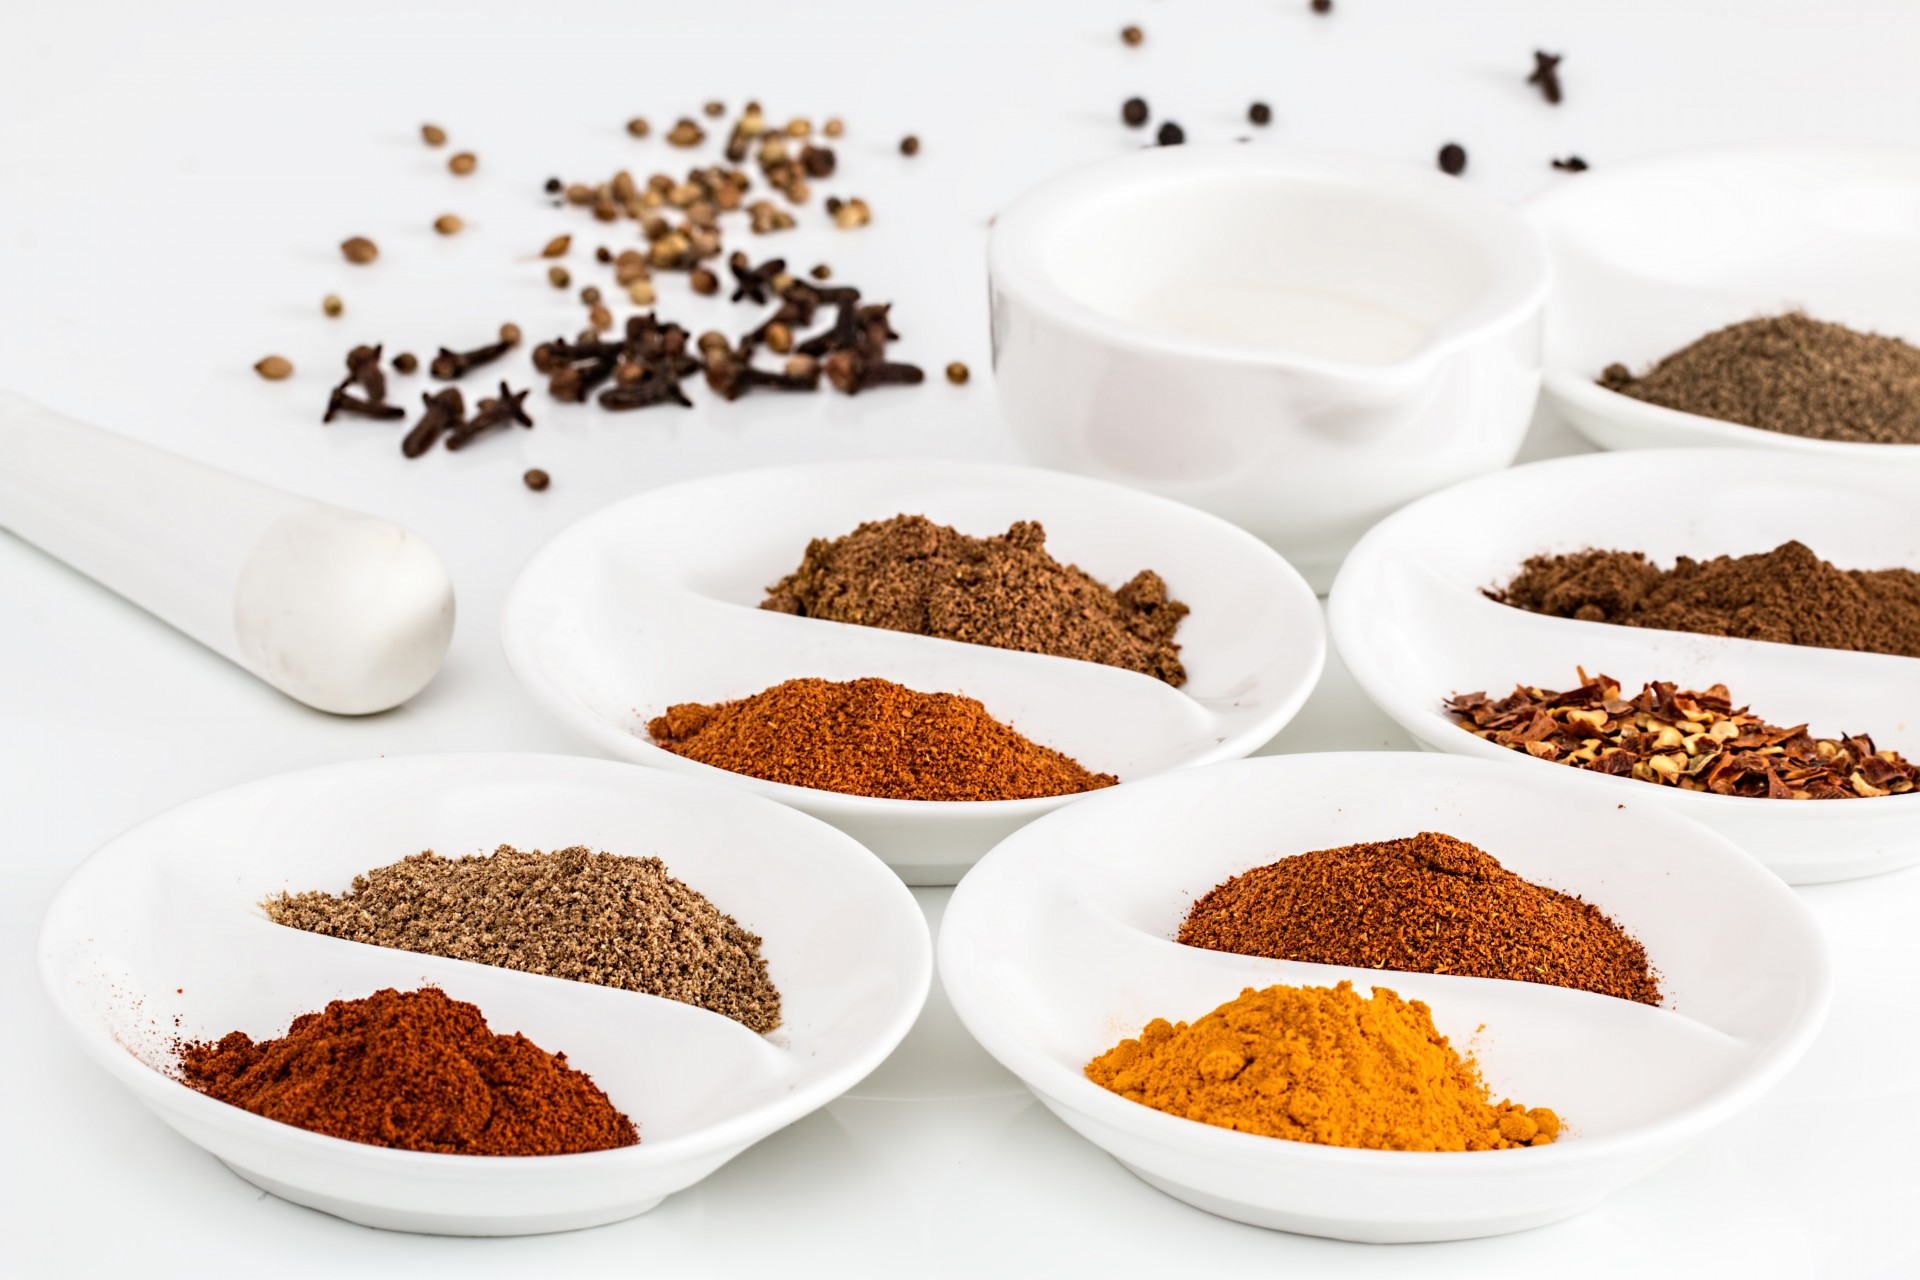 Three Spices You Should Add To Your Spice Rack